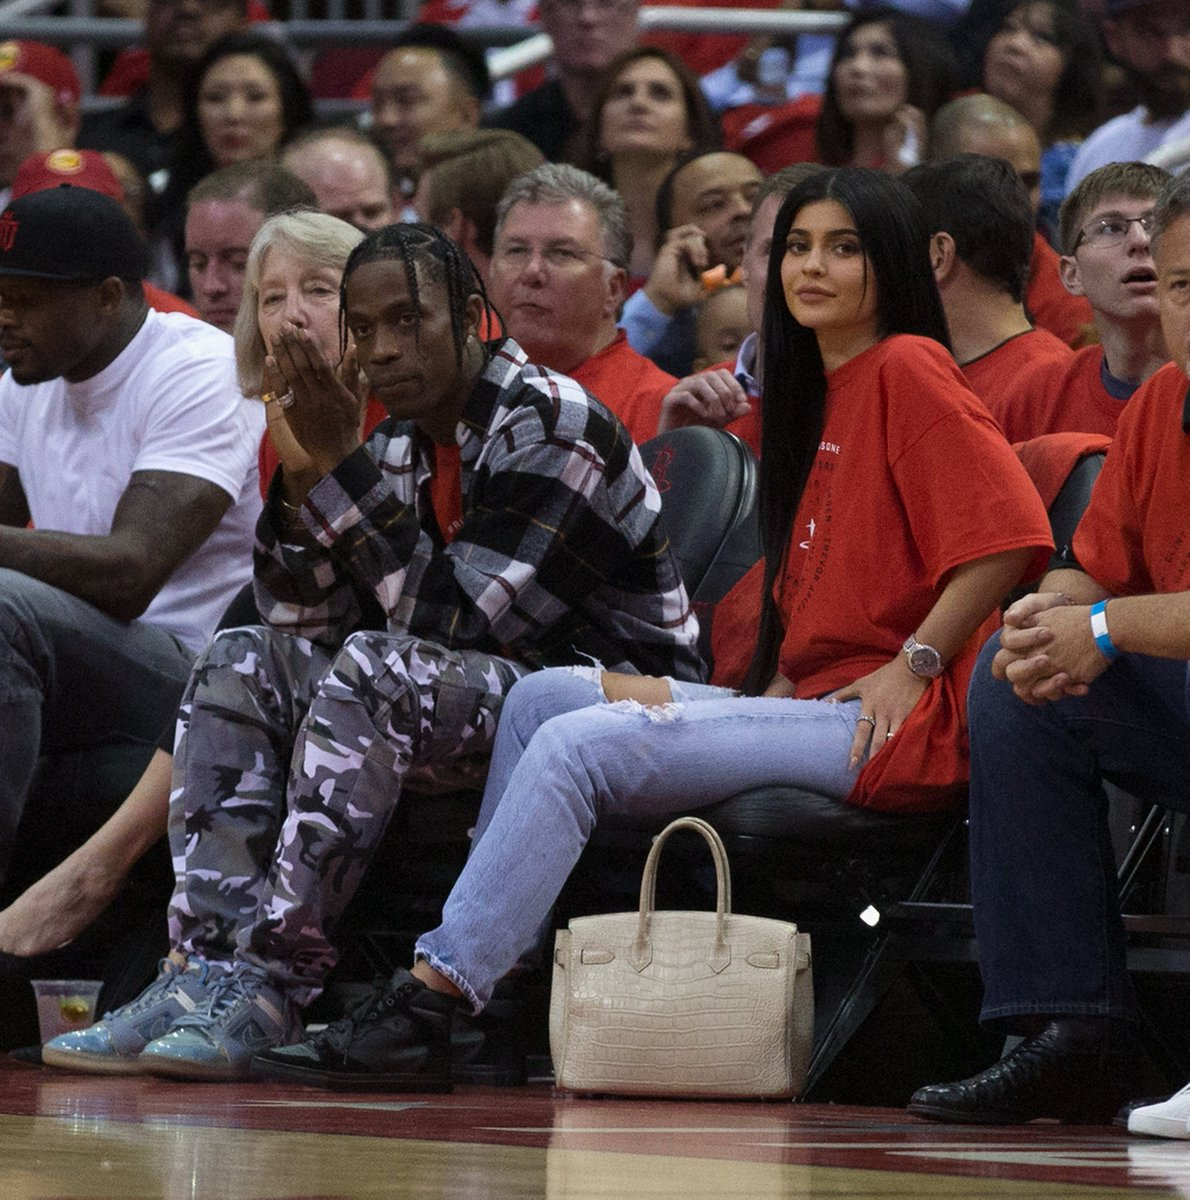 Kylie Jenner is pregnant with Travis Scott's baby, according to a new...